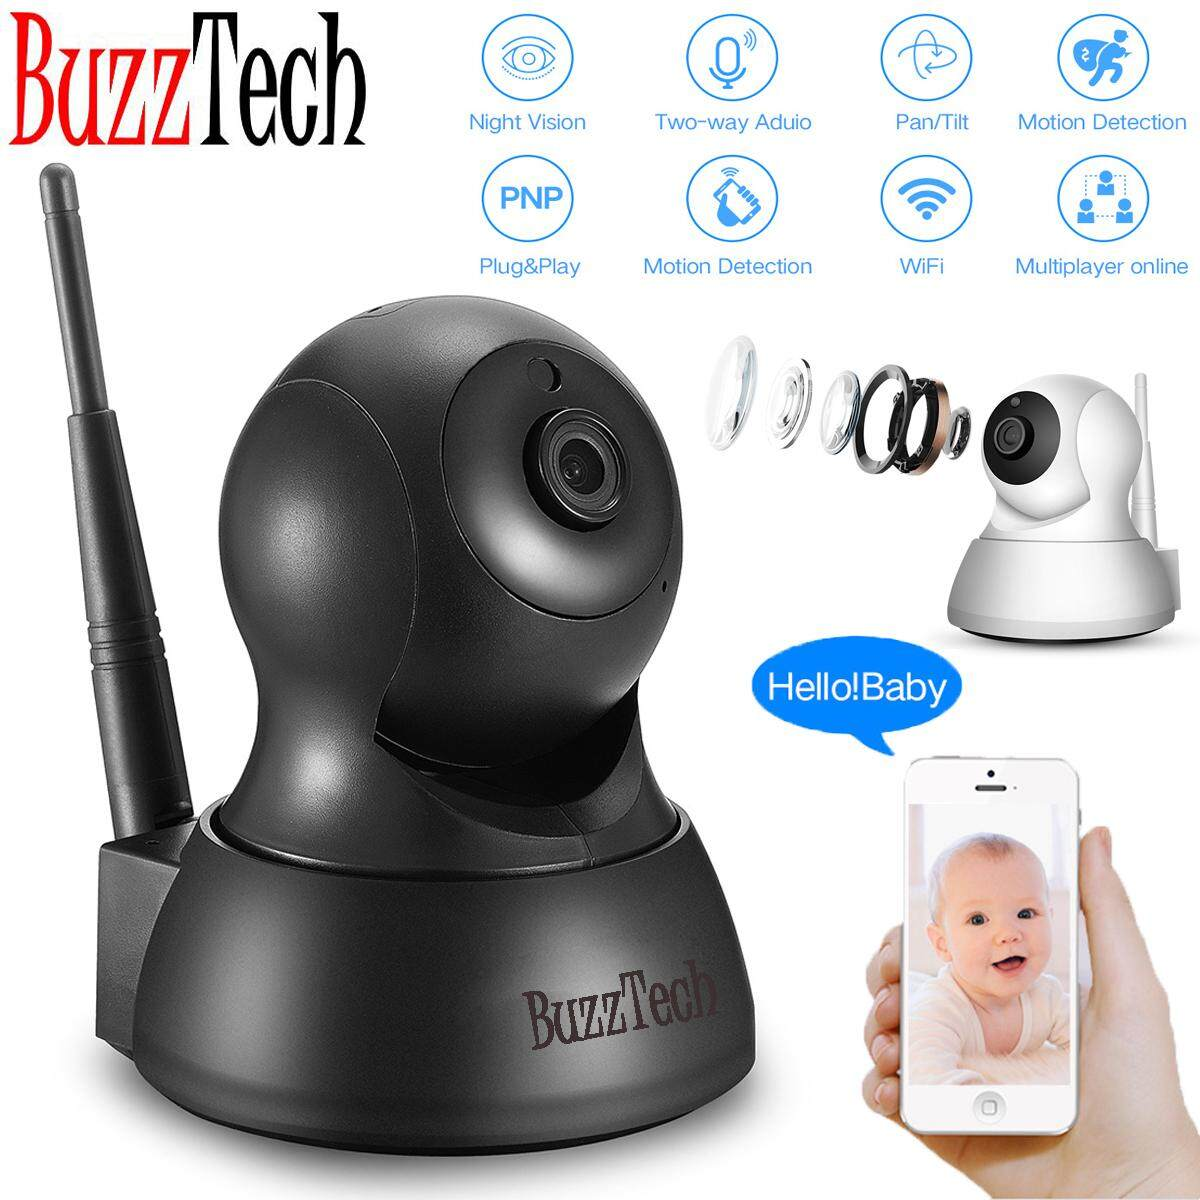 BuzzTech ICSEE Smart Wifi Camera IP Security Camera Cam 720P HD Wifi CCTV Night Vision Baby Monitor Wireless IP infrared monitoring